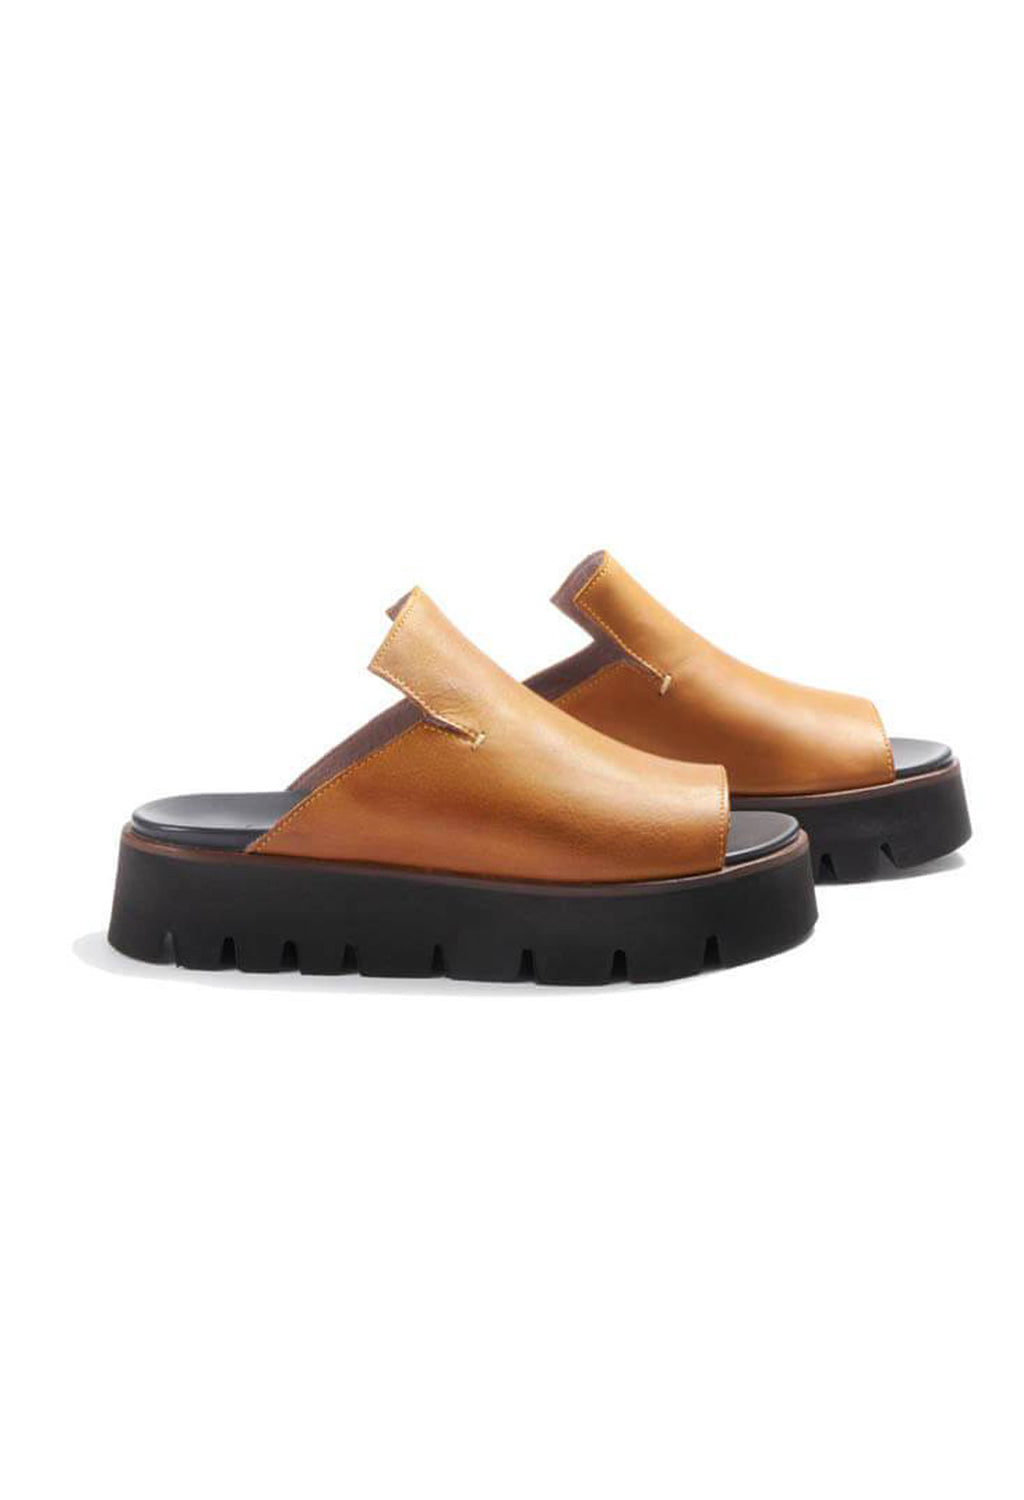 Chunky Slip On Sandals in Gasoline Ambra